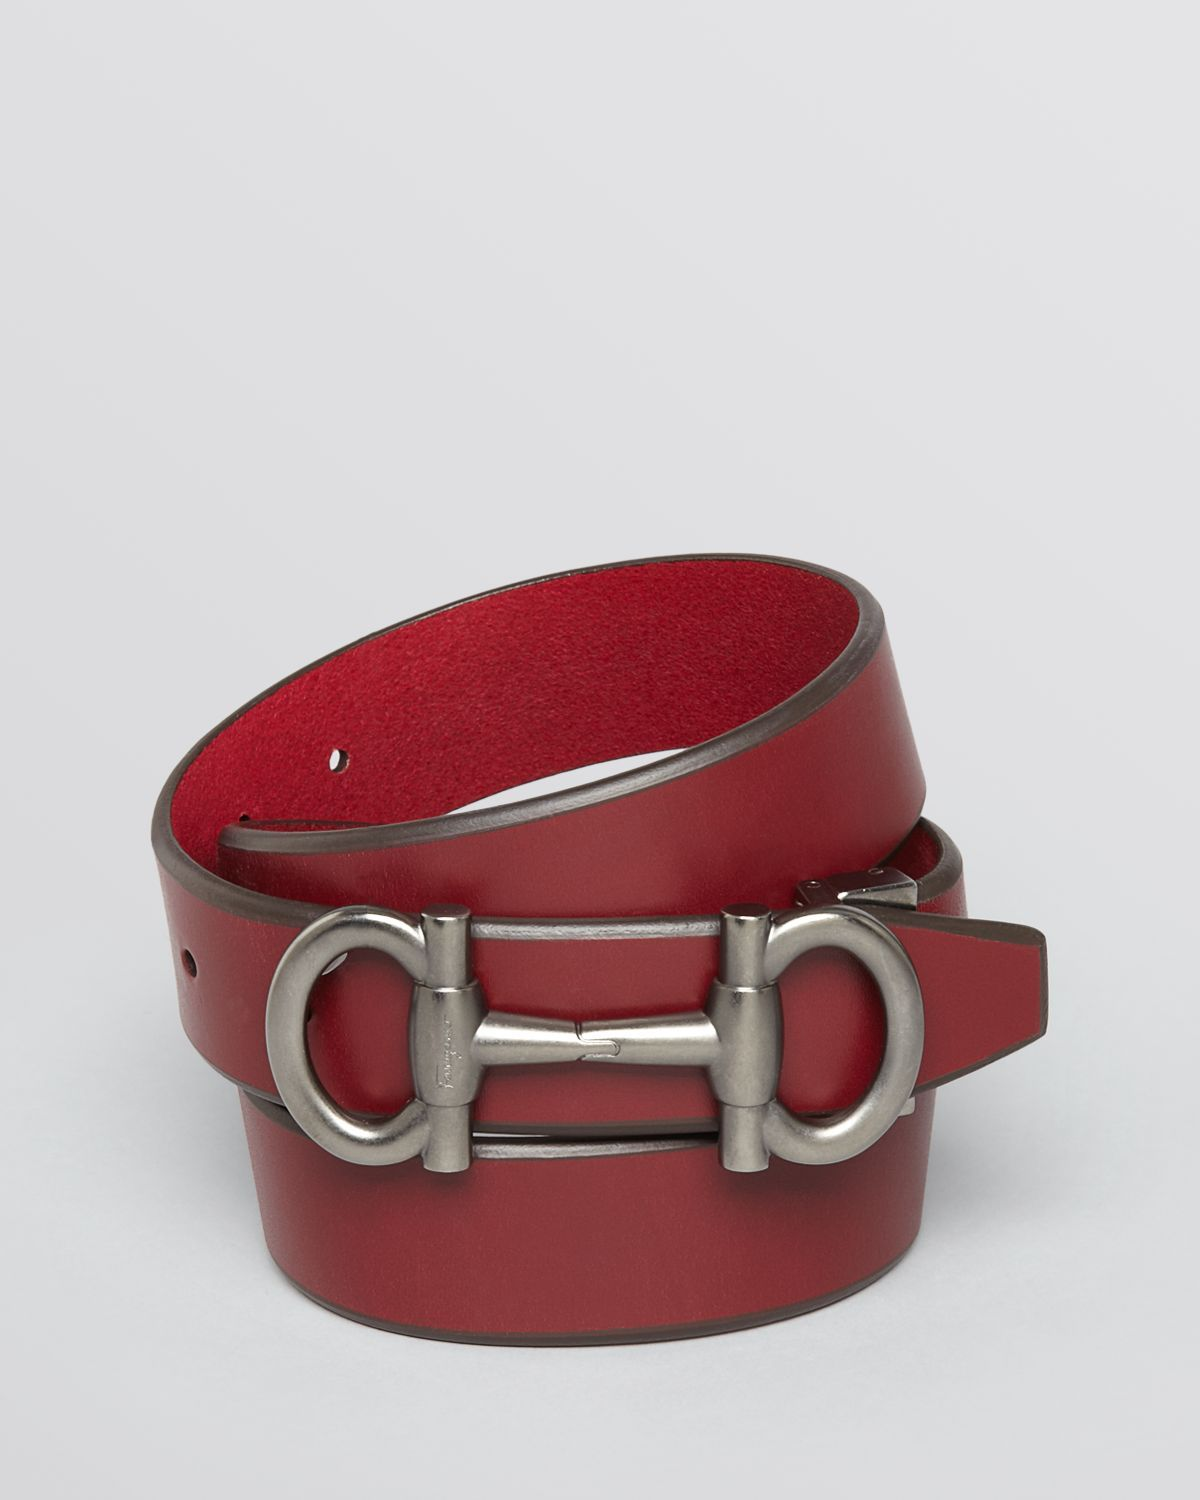 Red Ferragamo Belt Buckle   Red Belt   Pinterest   Belt, Belt ... 599085eb5f